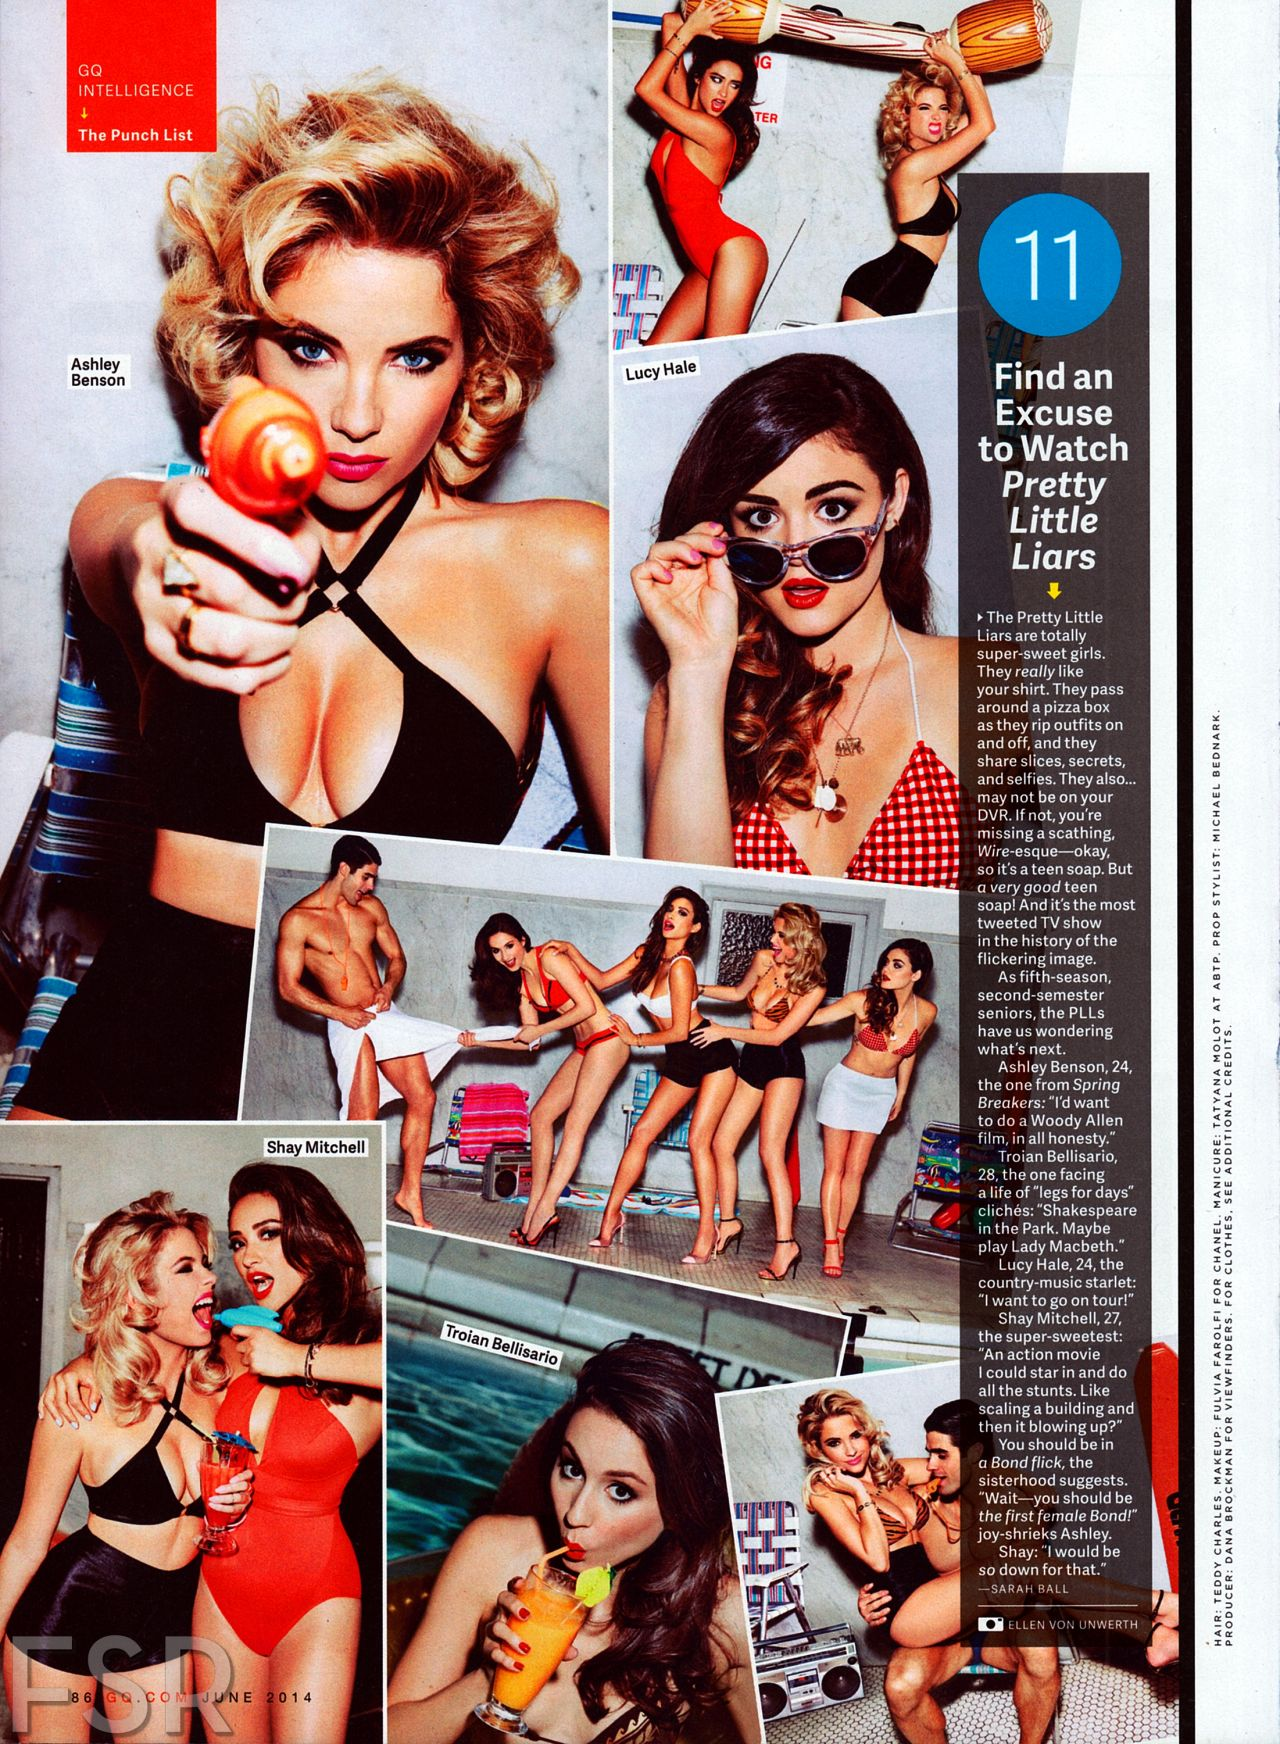 Ashley Benson, Shjay Mitchell, Lucy Hale and Troian Bellisario - GQ Magazine June 2014 Issue